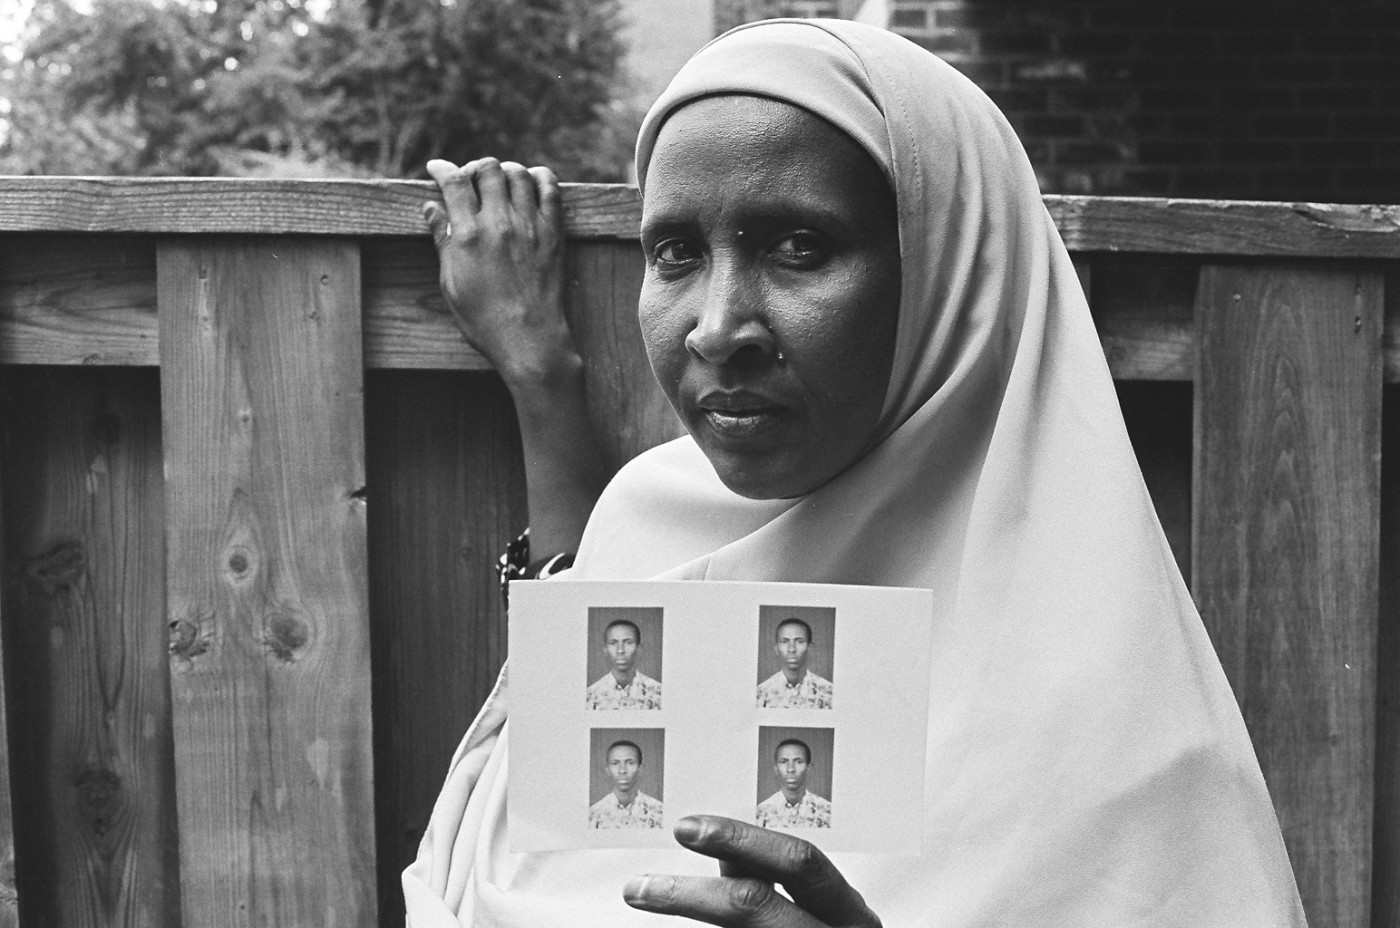 Anna Hill for Settlement Arts, </span><span><em>Habibo Waiting For Her Son Hassan Who Lives As A Refugee In Kenya, 2008</em>, </span><span>Gelatin silver print   16 inch x 20 inch